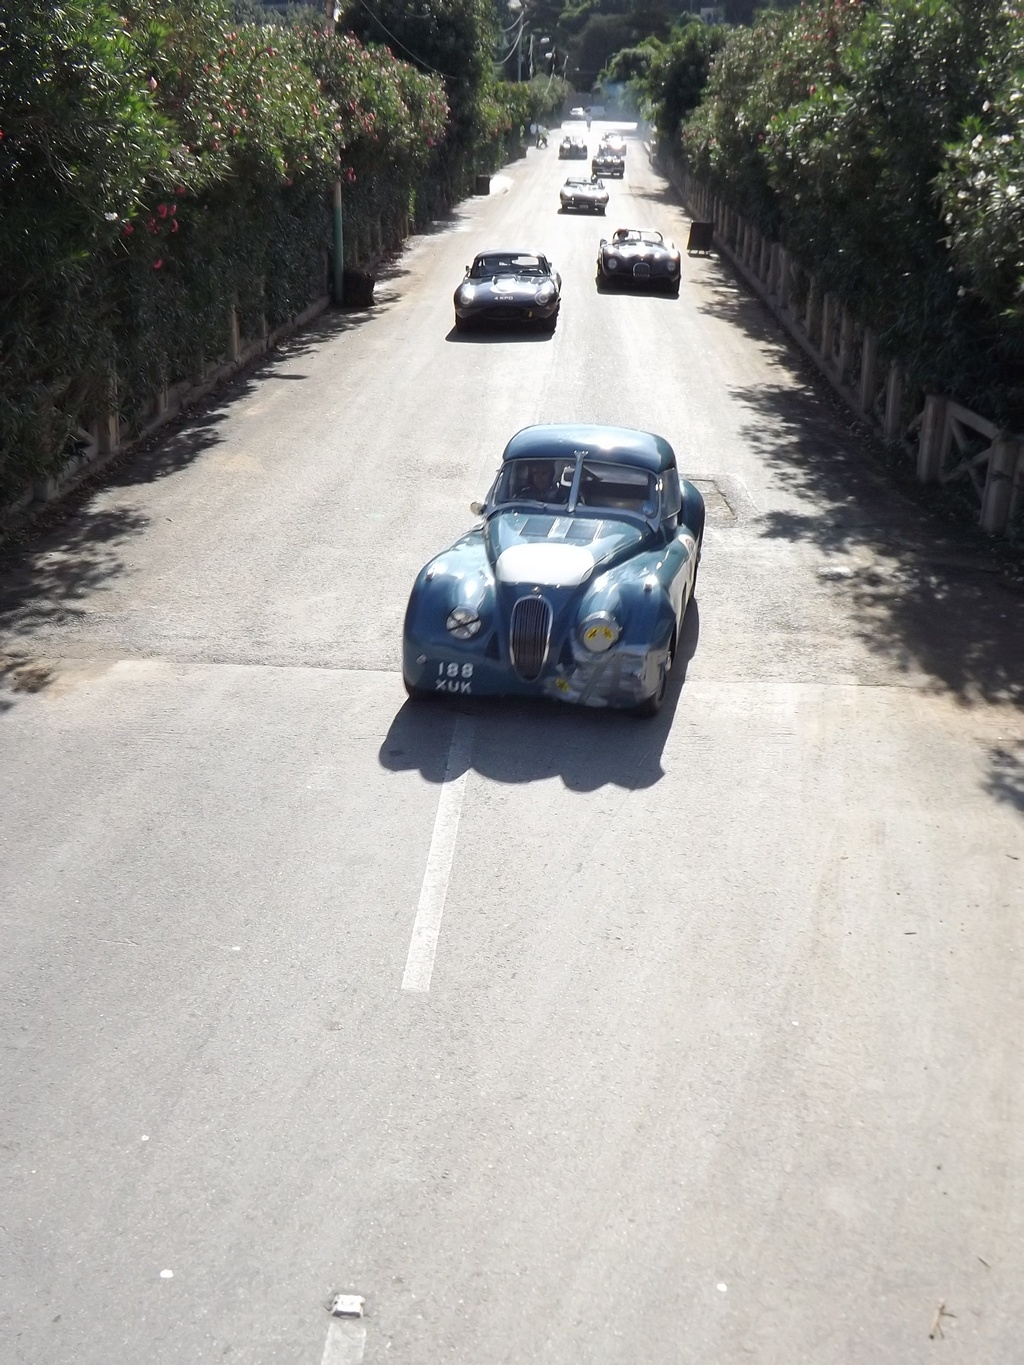 A Jag-fest lead by Guy Broad with a patched up XK, with E and C types chasing